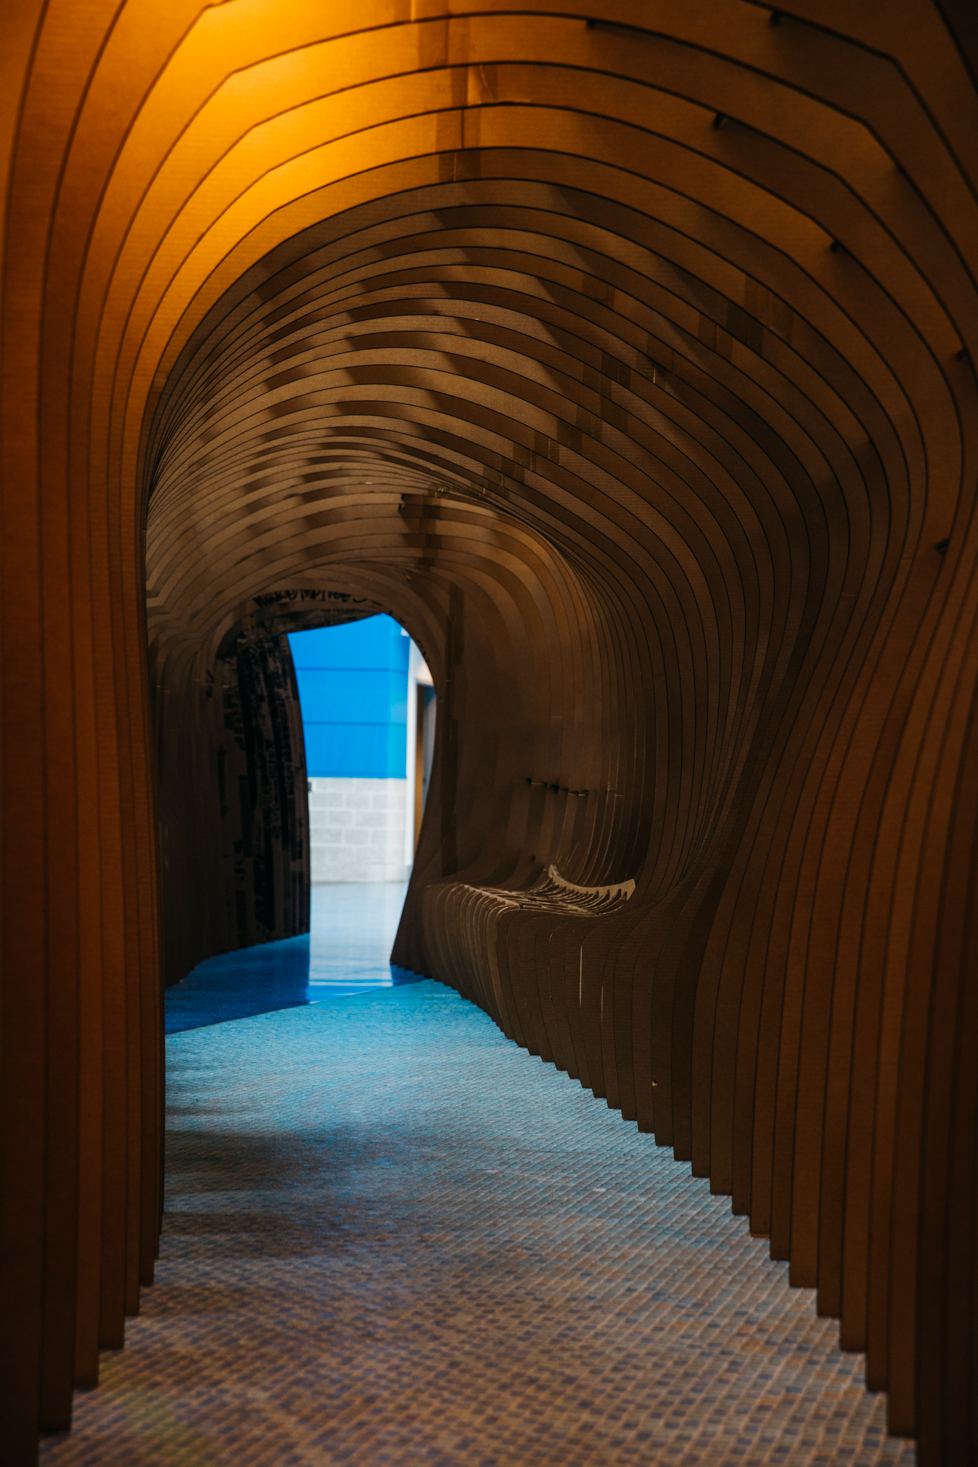 - The installation was free standing and constructed with no tools or glue. Custom, laser-cut cardboard fasteners brought the mass to life; it grew to 12 ft. in height including a walkway, window, and interior bench.